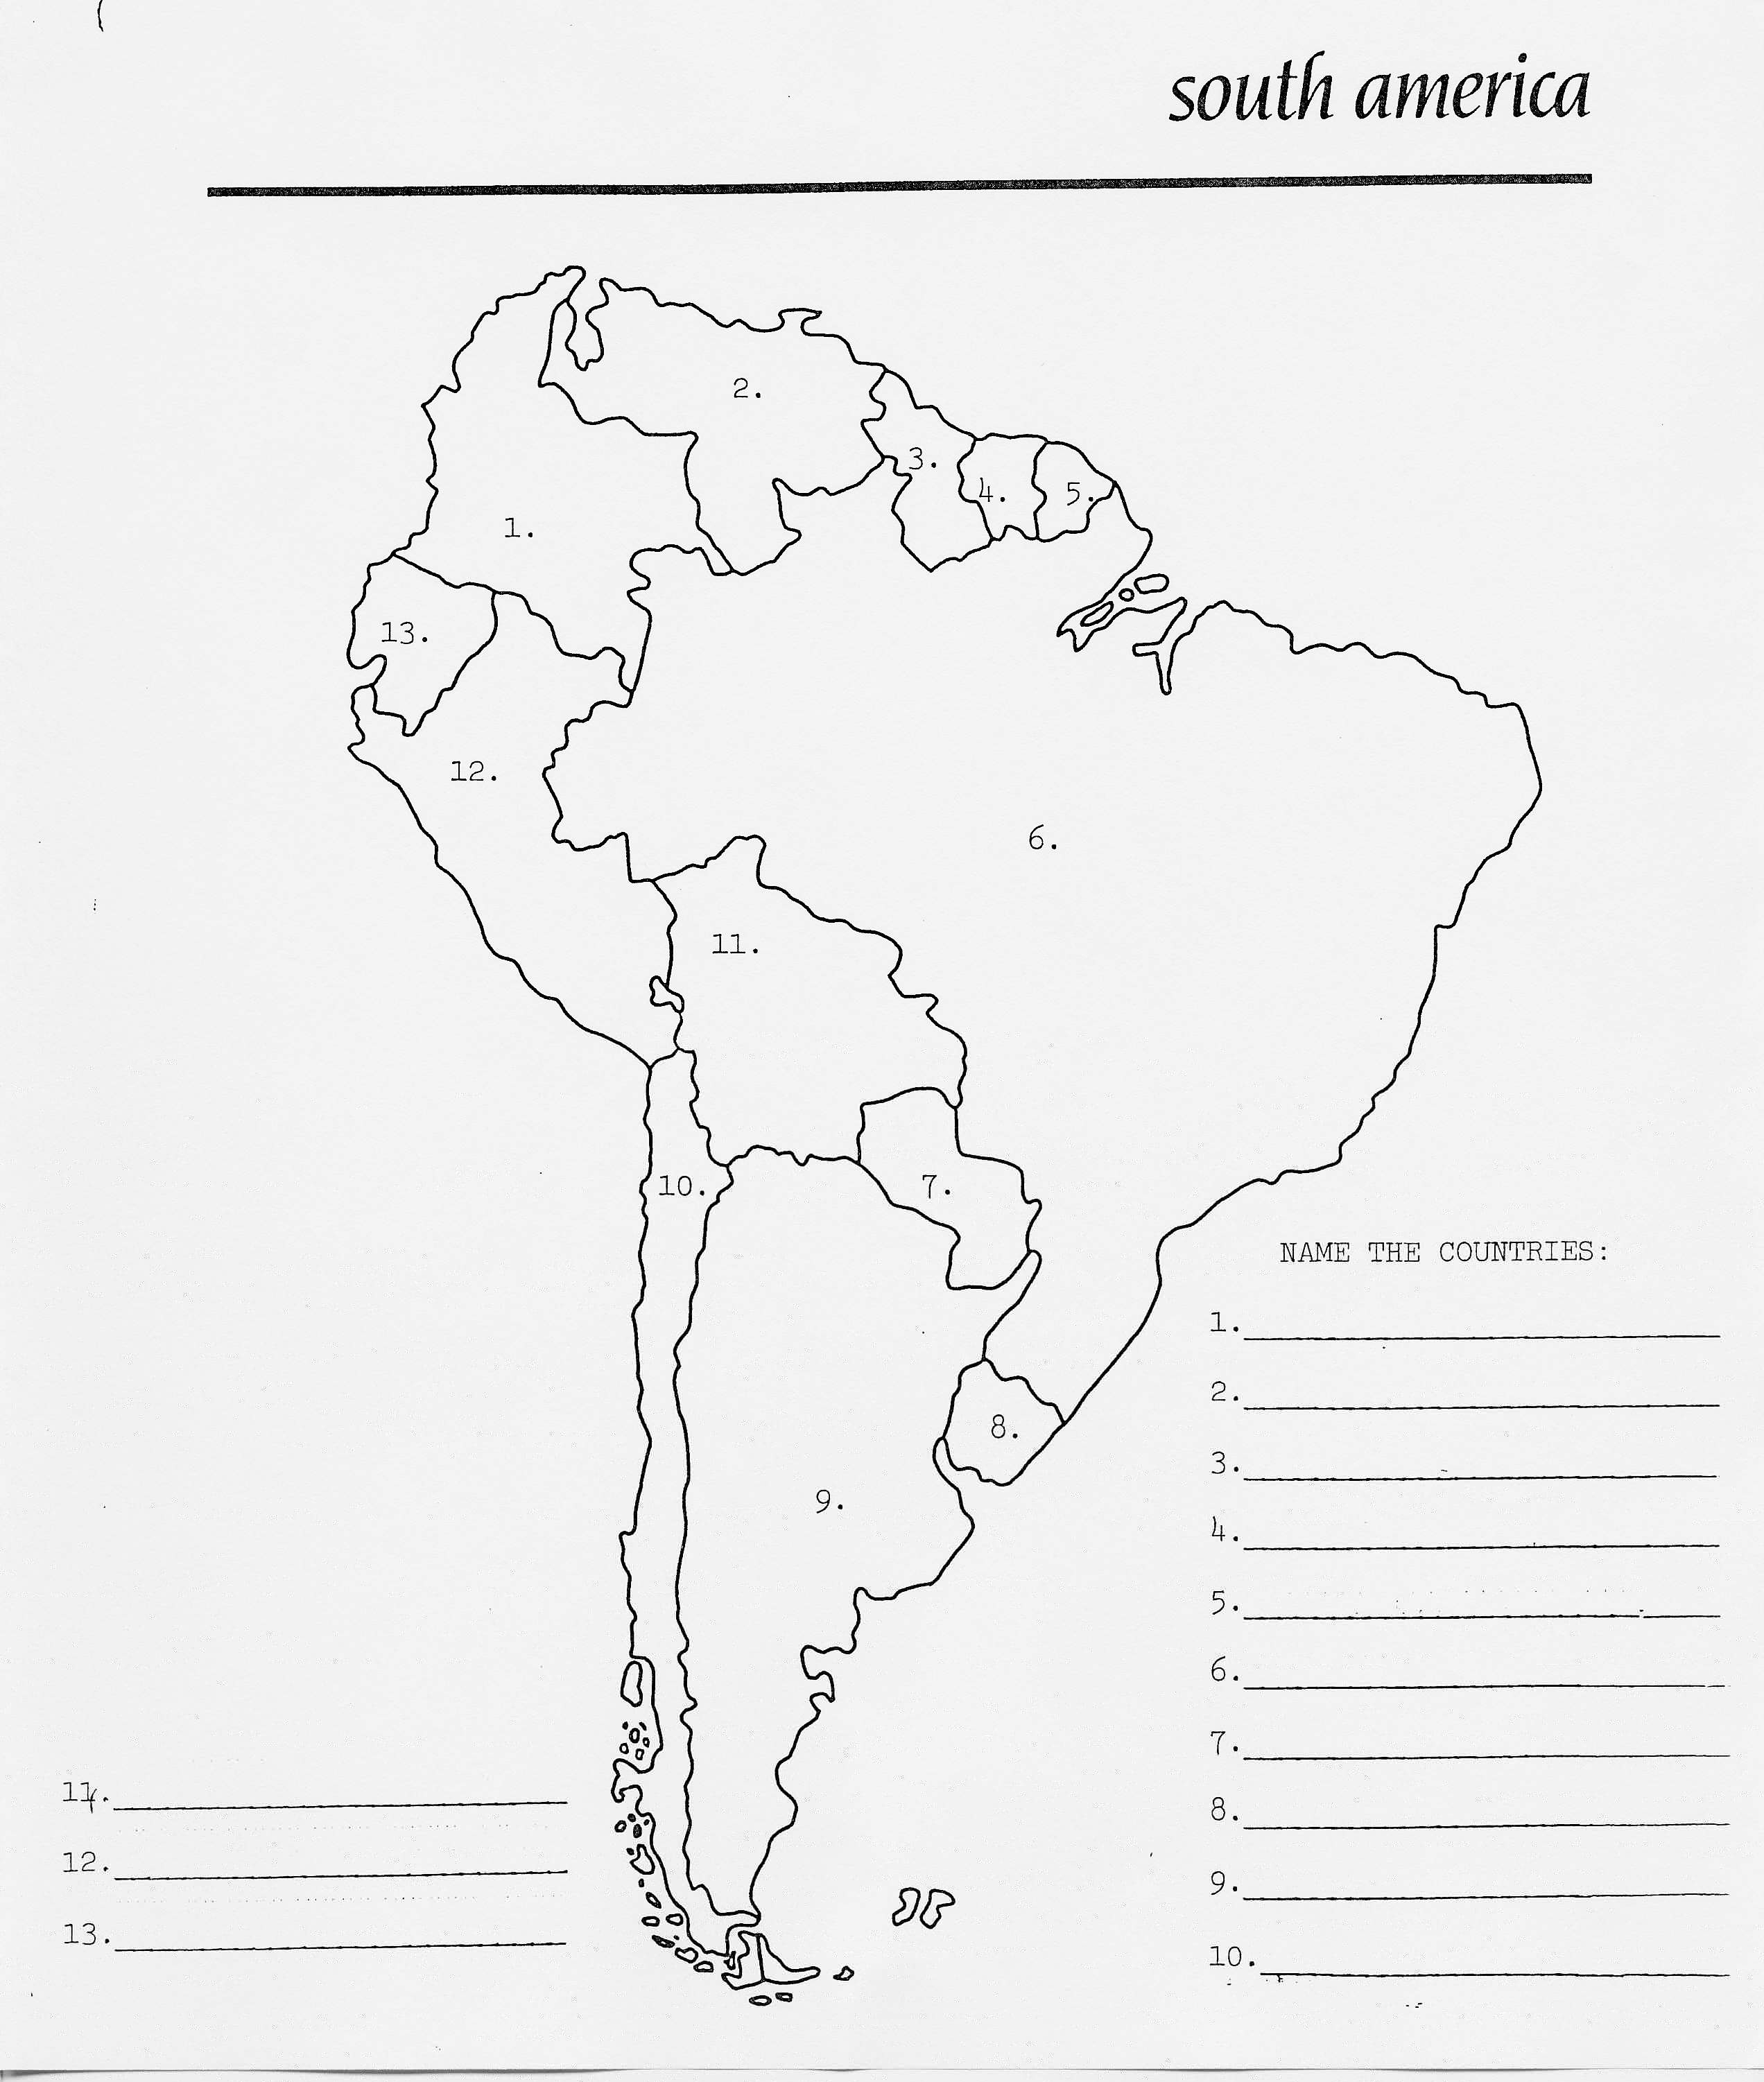 Blank Outline Map South America